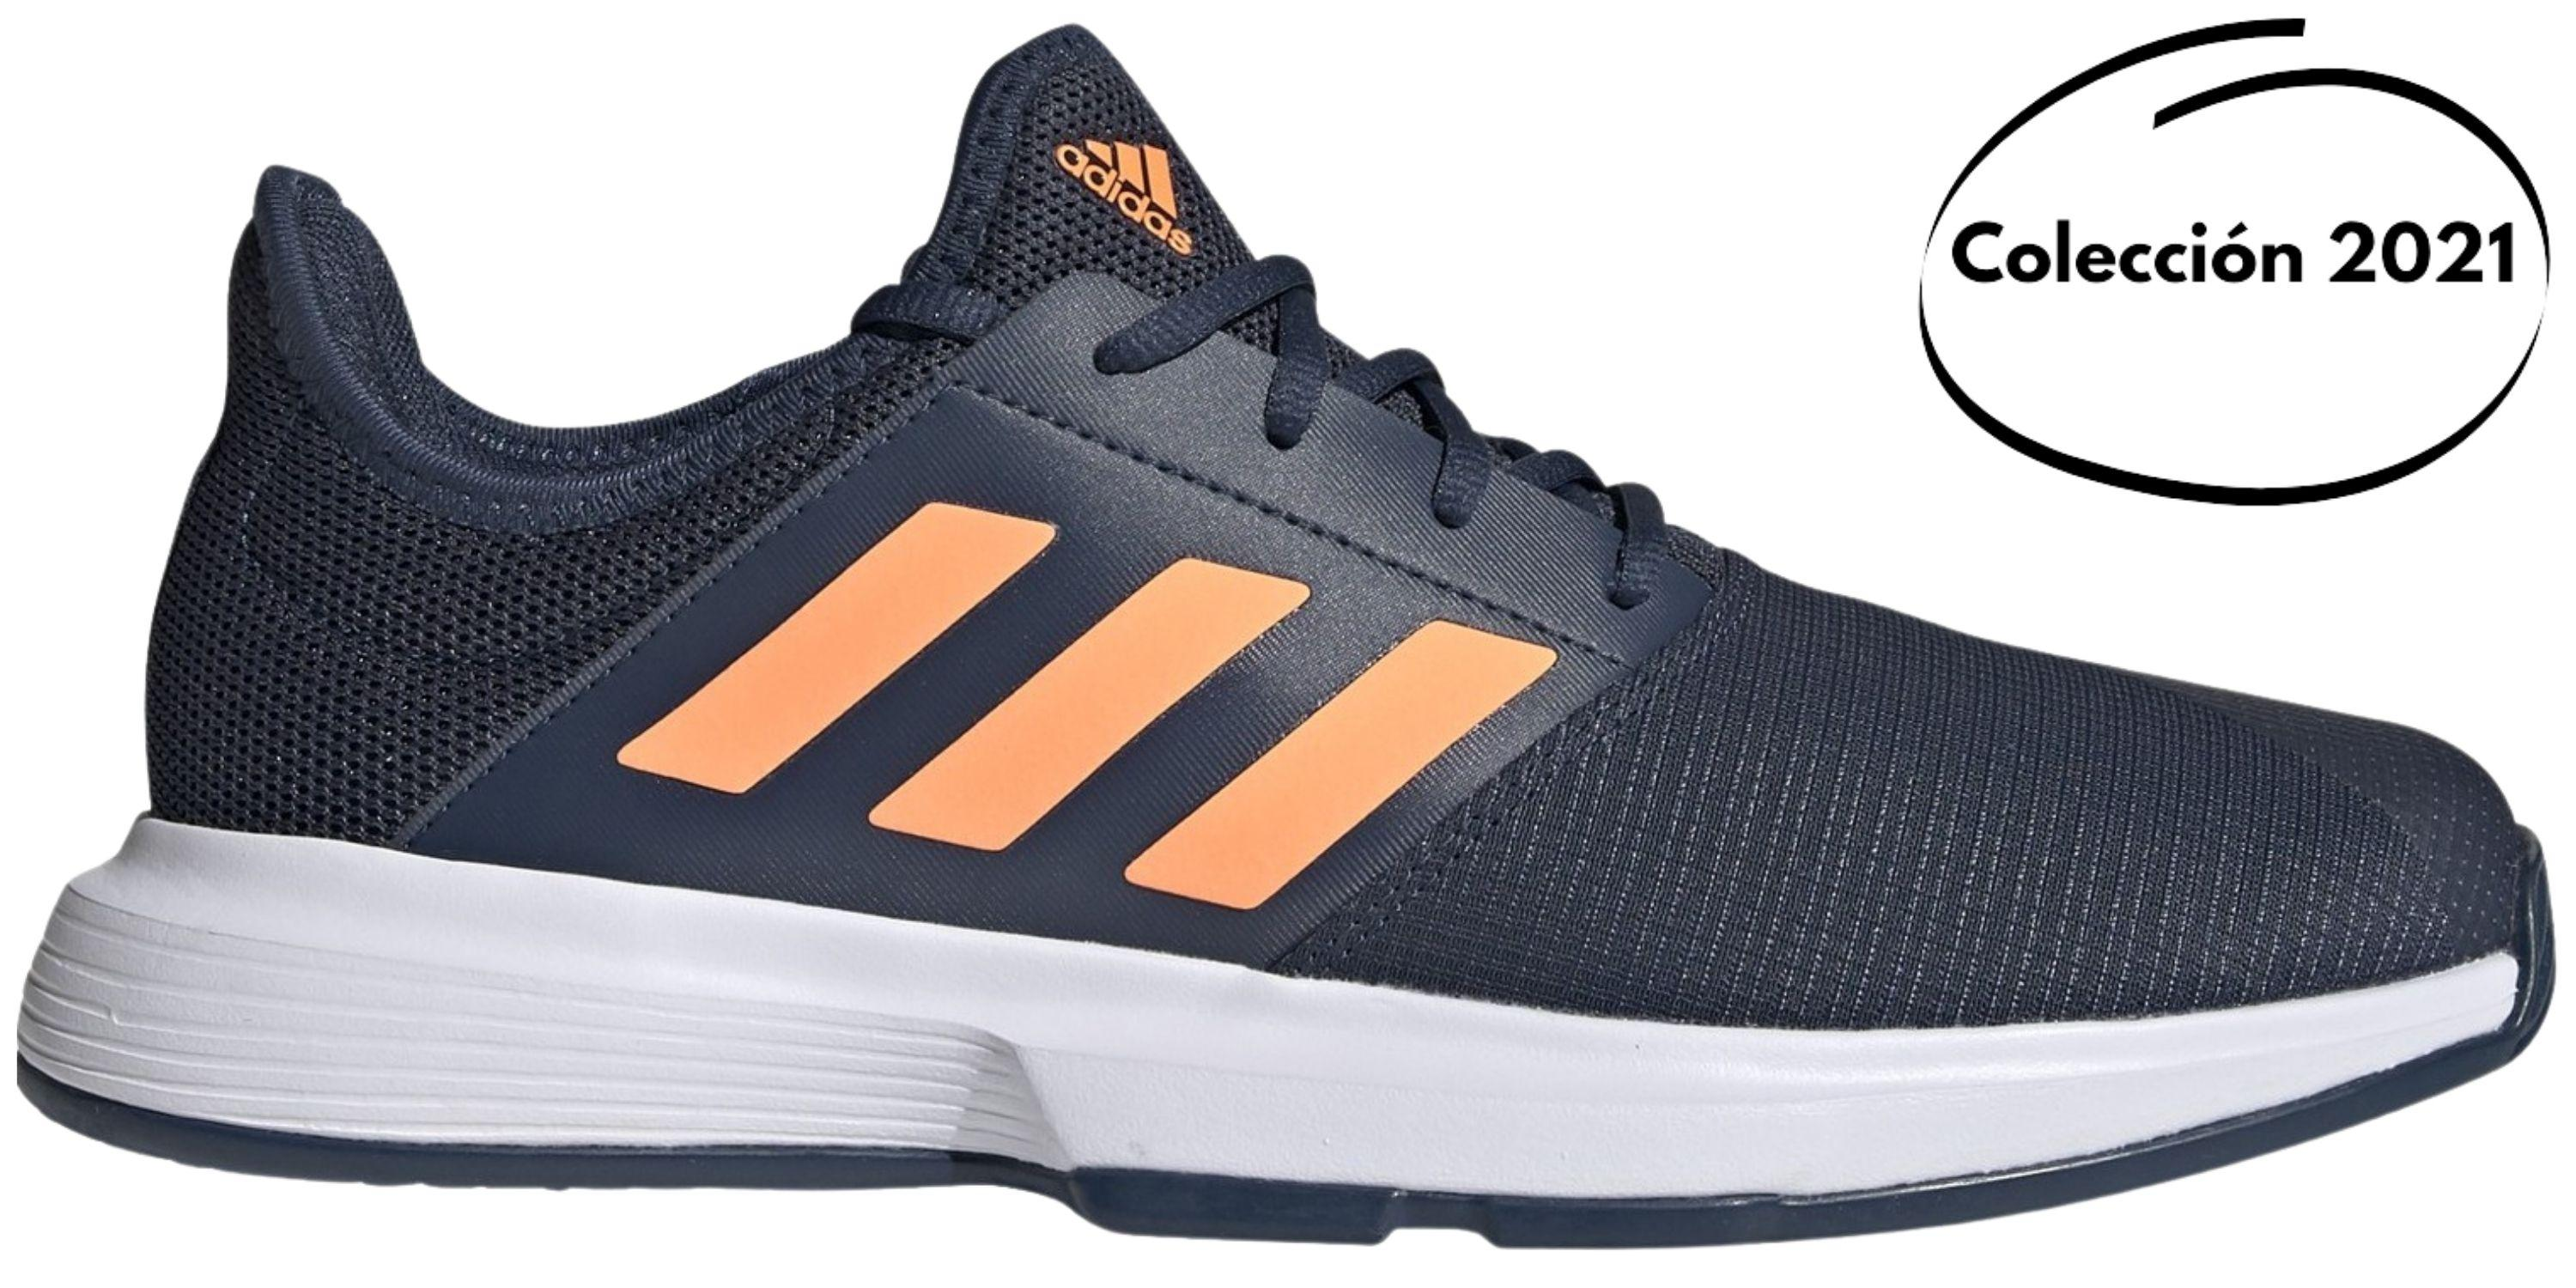 Zapatillas ADIDAS GAMECOURT 2021